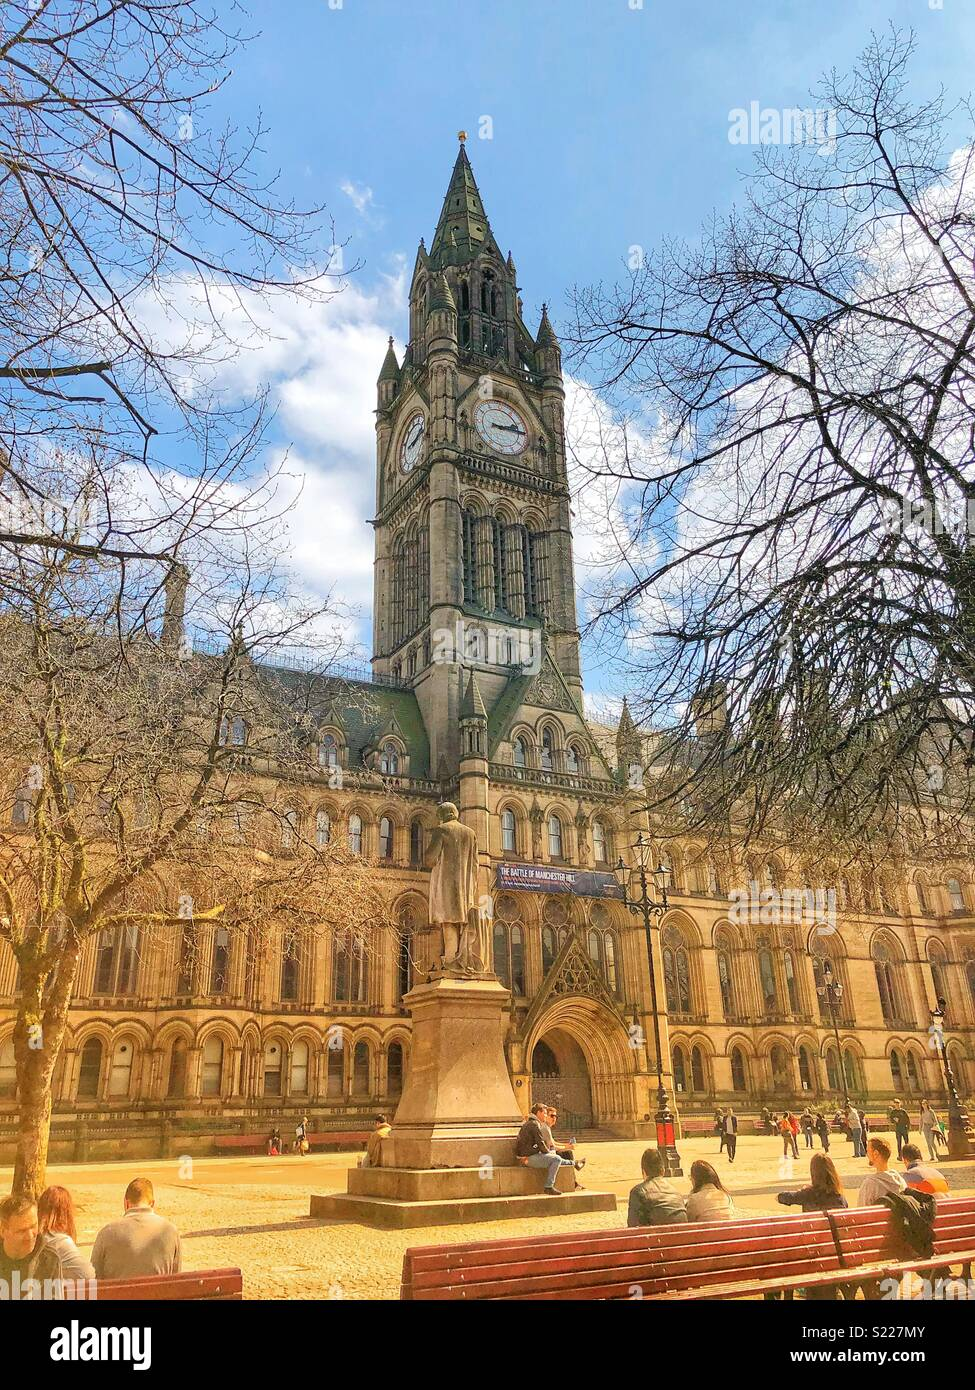 Manchester Town Hall - Stock Image